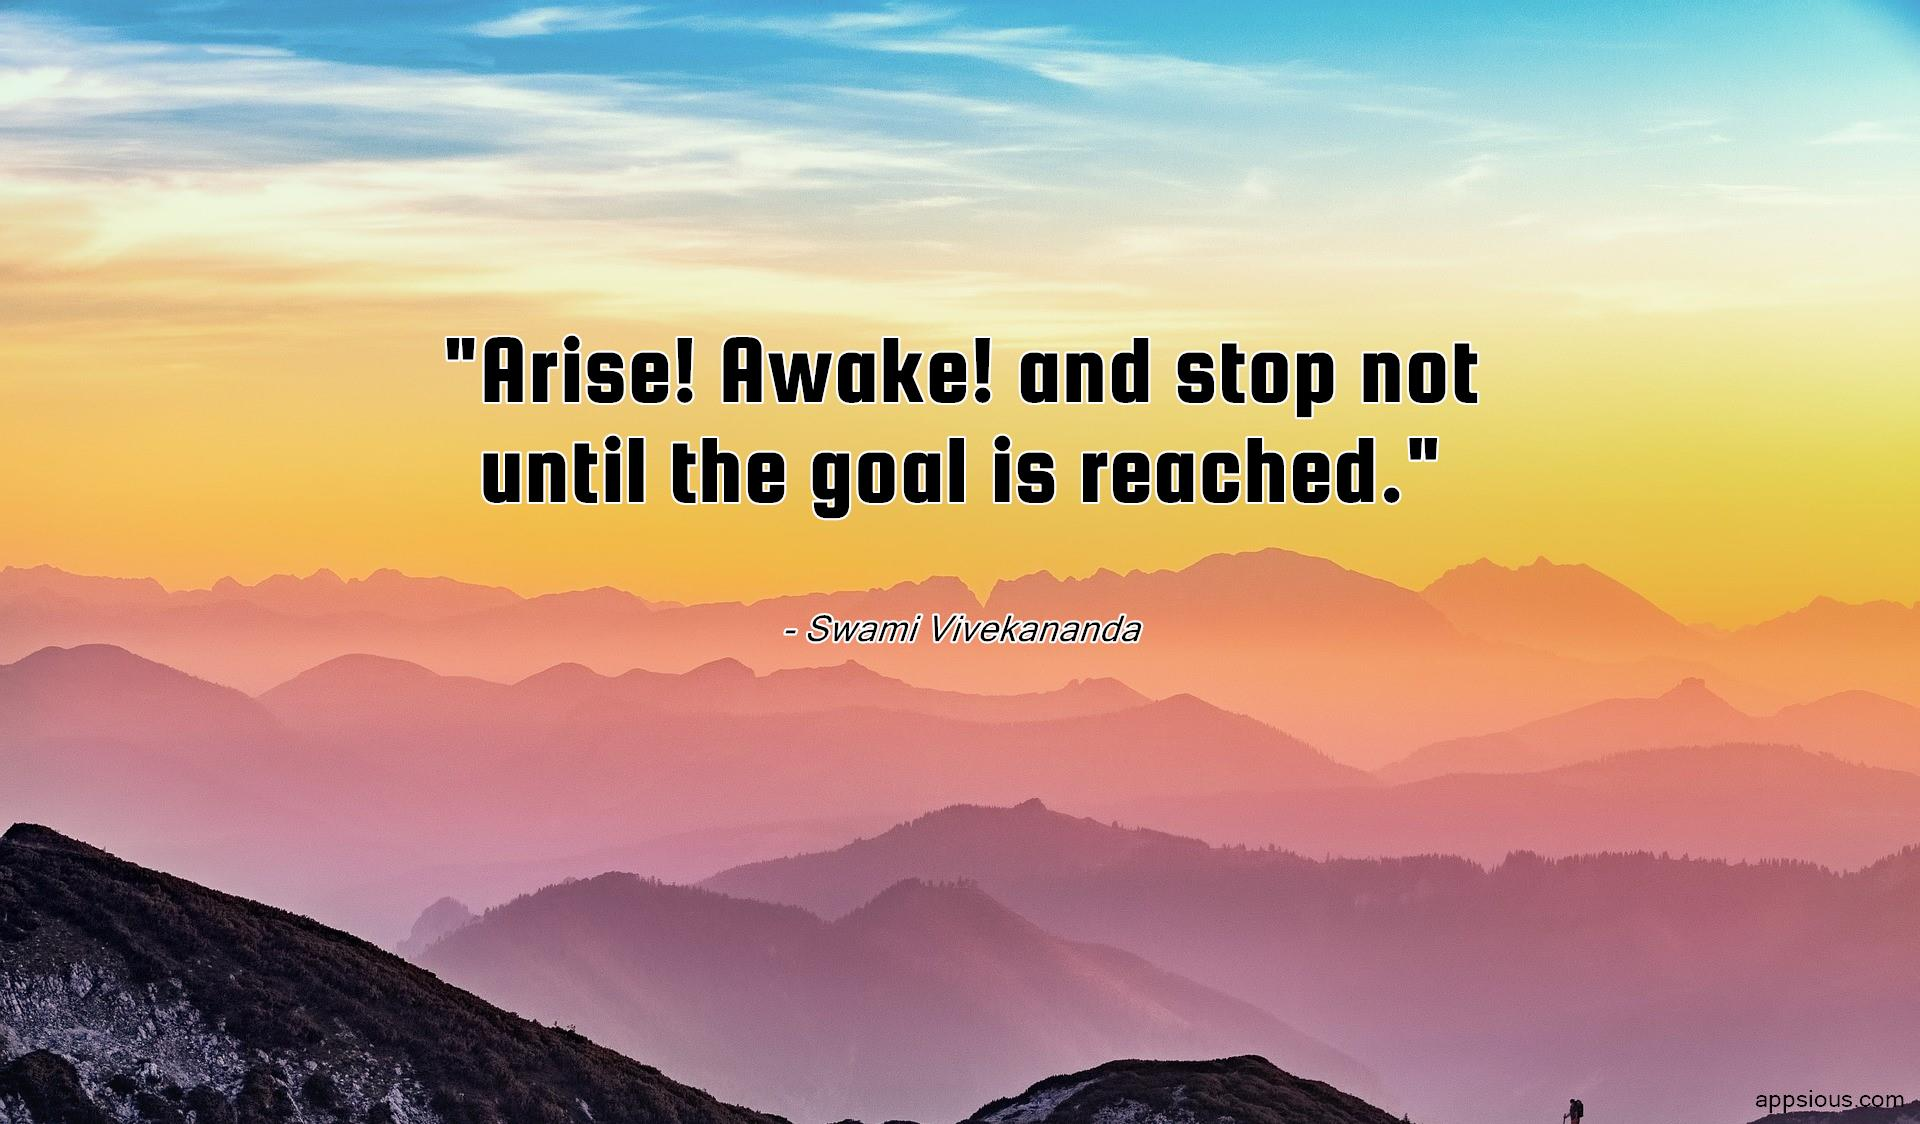 Arise! Awake! and stop not until the goal is reached.